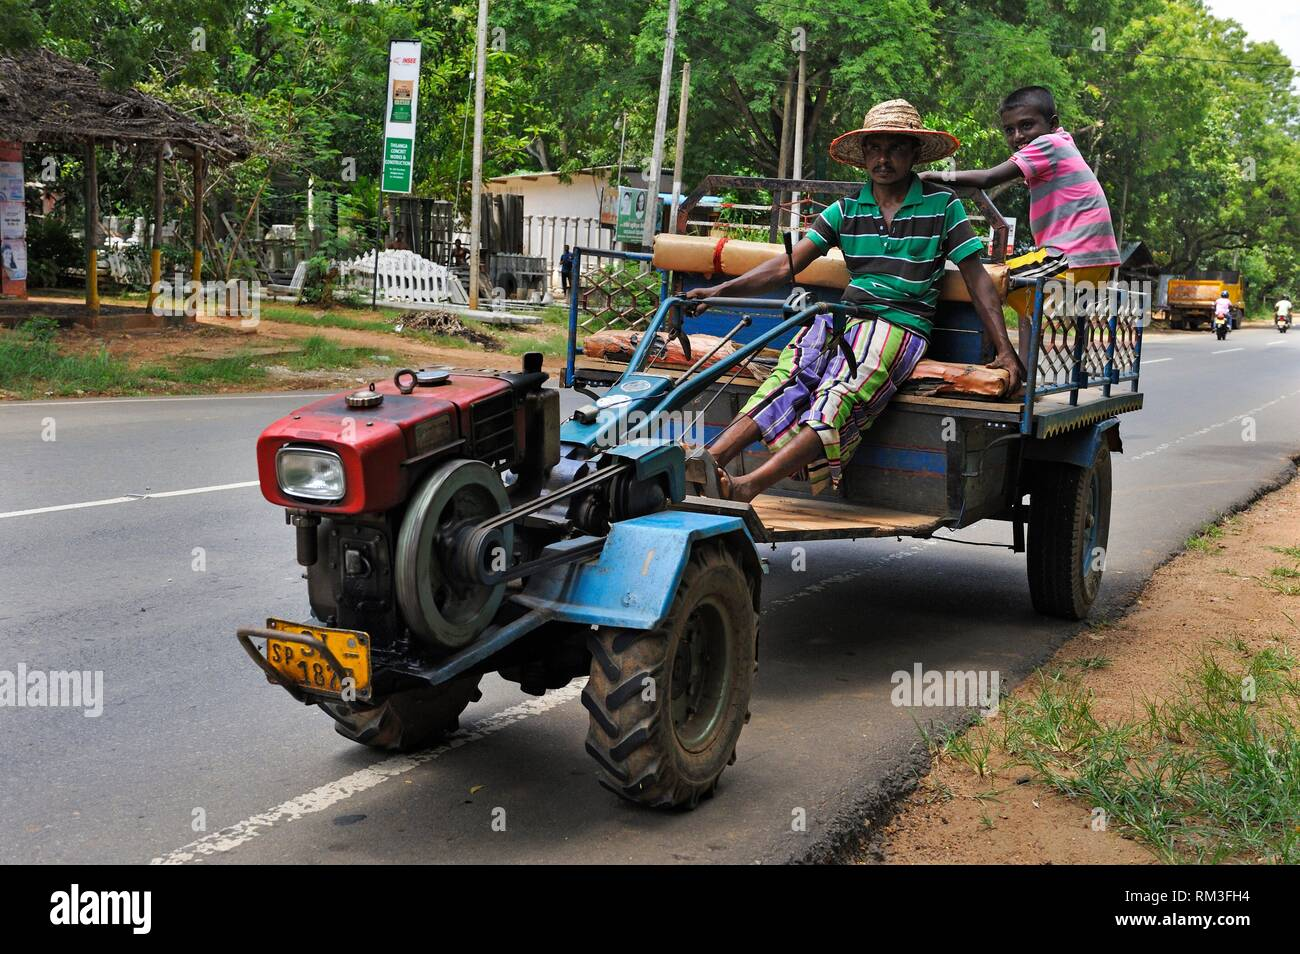 cart towed with motorized cultivator, Sri Lanka, Indian subcontinent, South Asia. - Stock Image